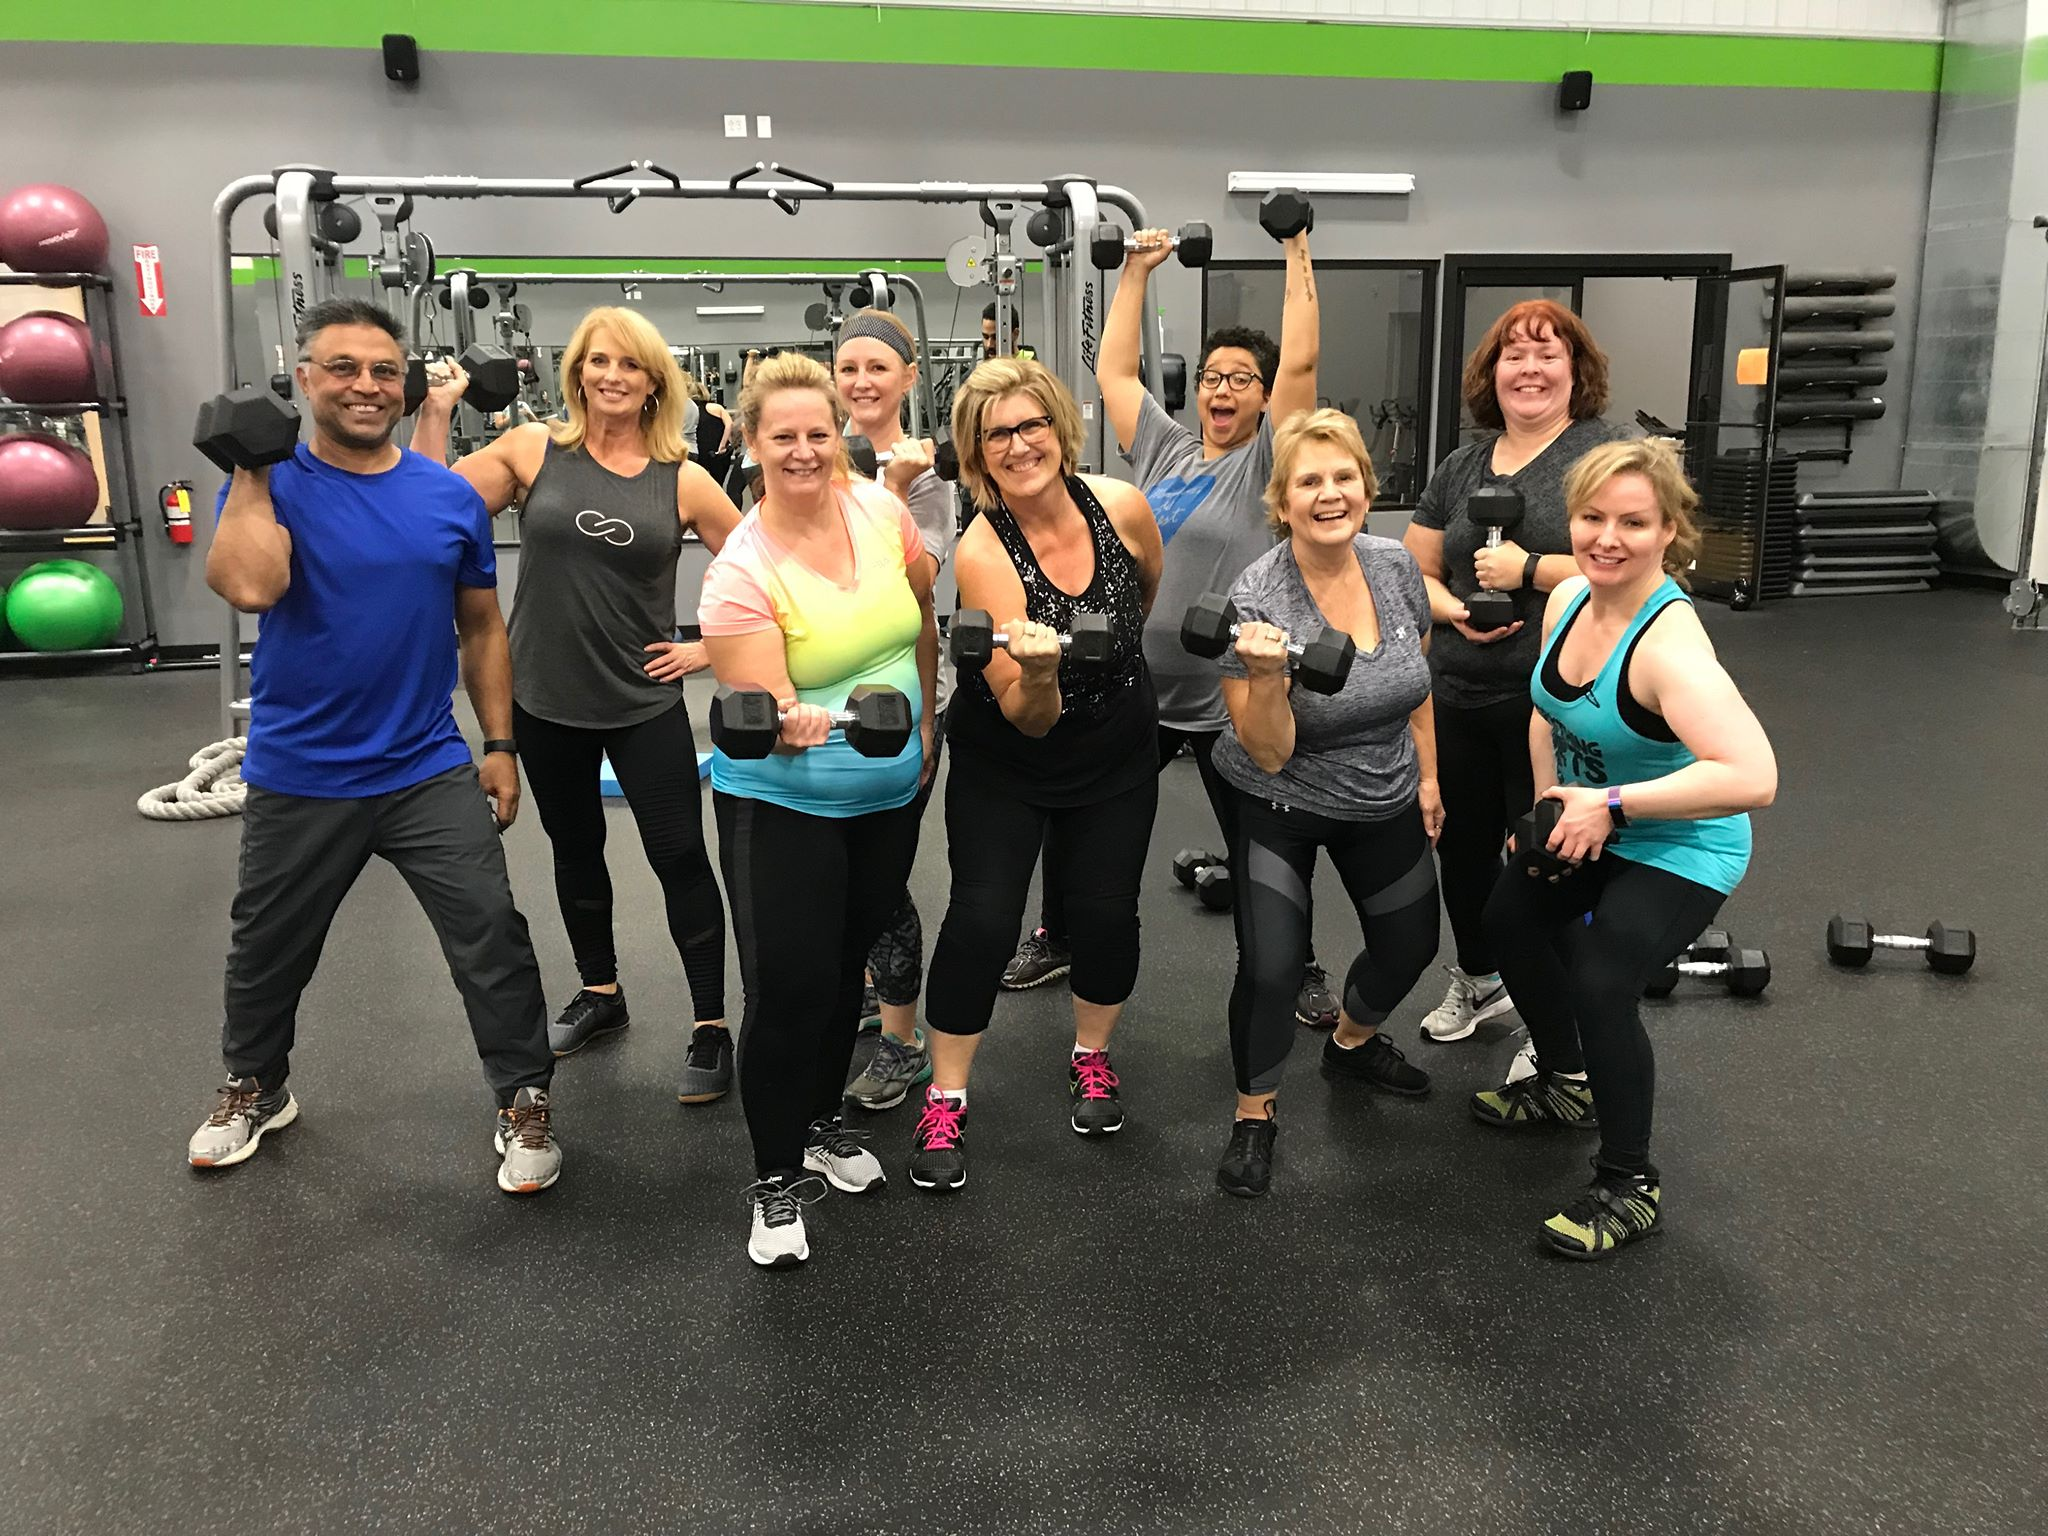 Our Transform U group consists of people in different places on their journey to be their best. We push, motivate and support each other every step of the way. Lead by a personal trainer who is also an ACE Nutrition Specialist, this program addresses multiple facets of wellness to increase results.